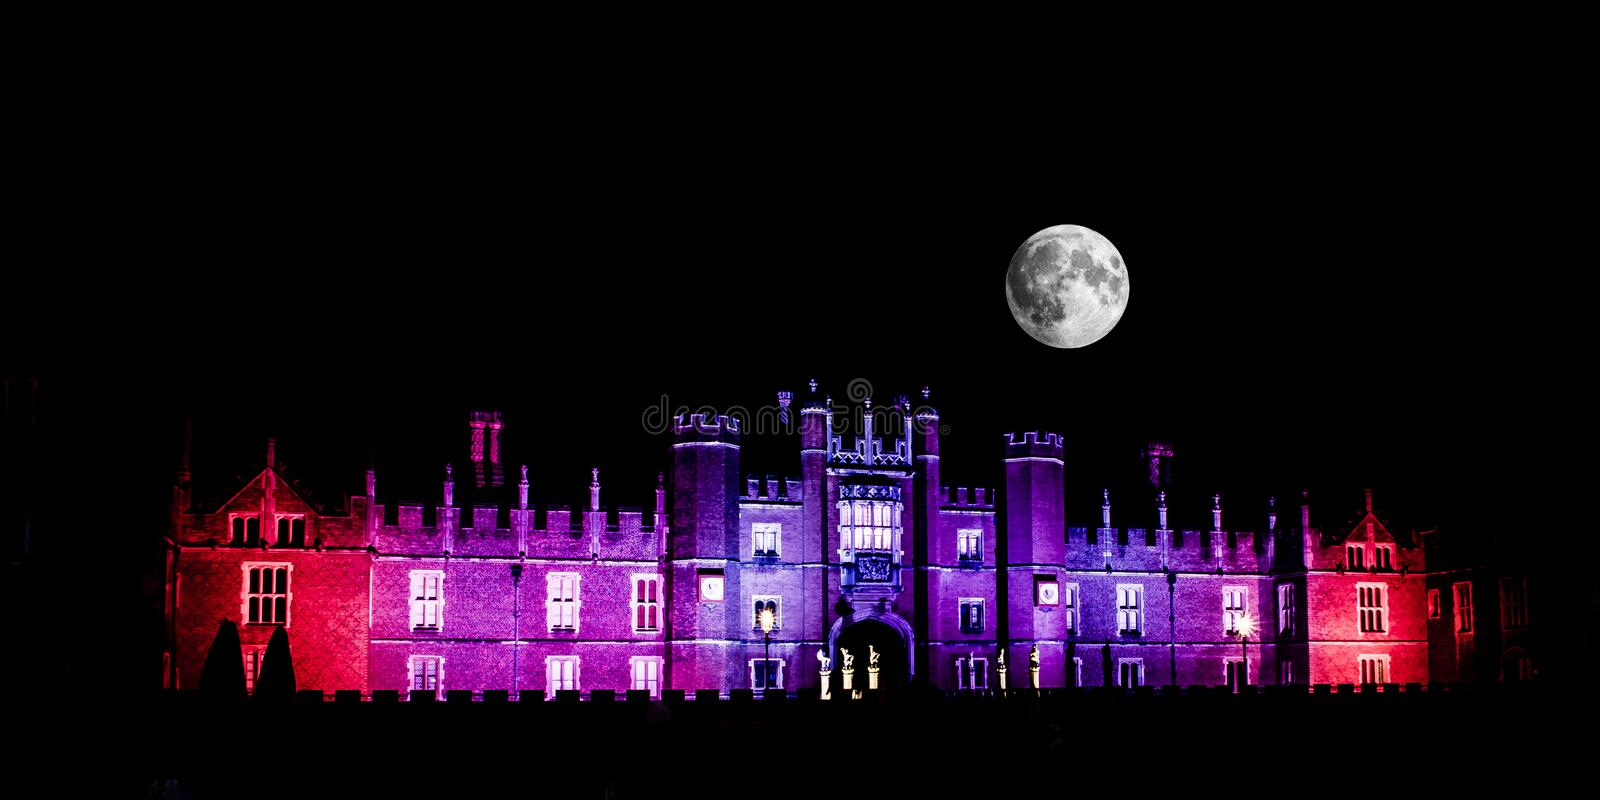 Mond über Hampton Court Palace stockfoto